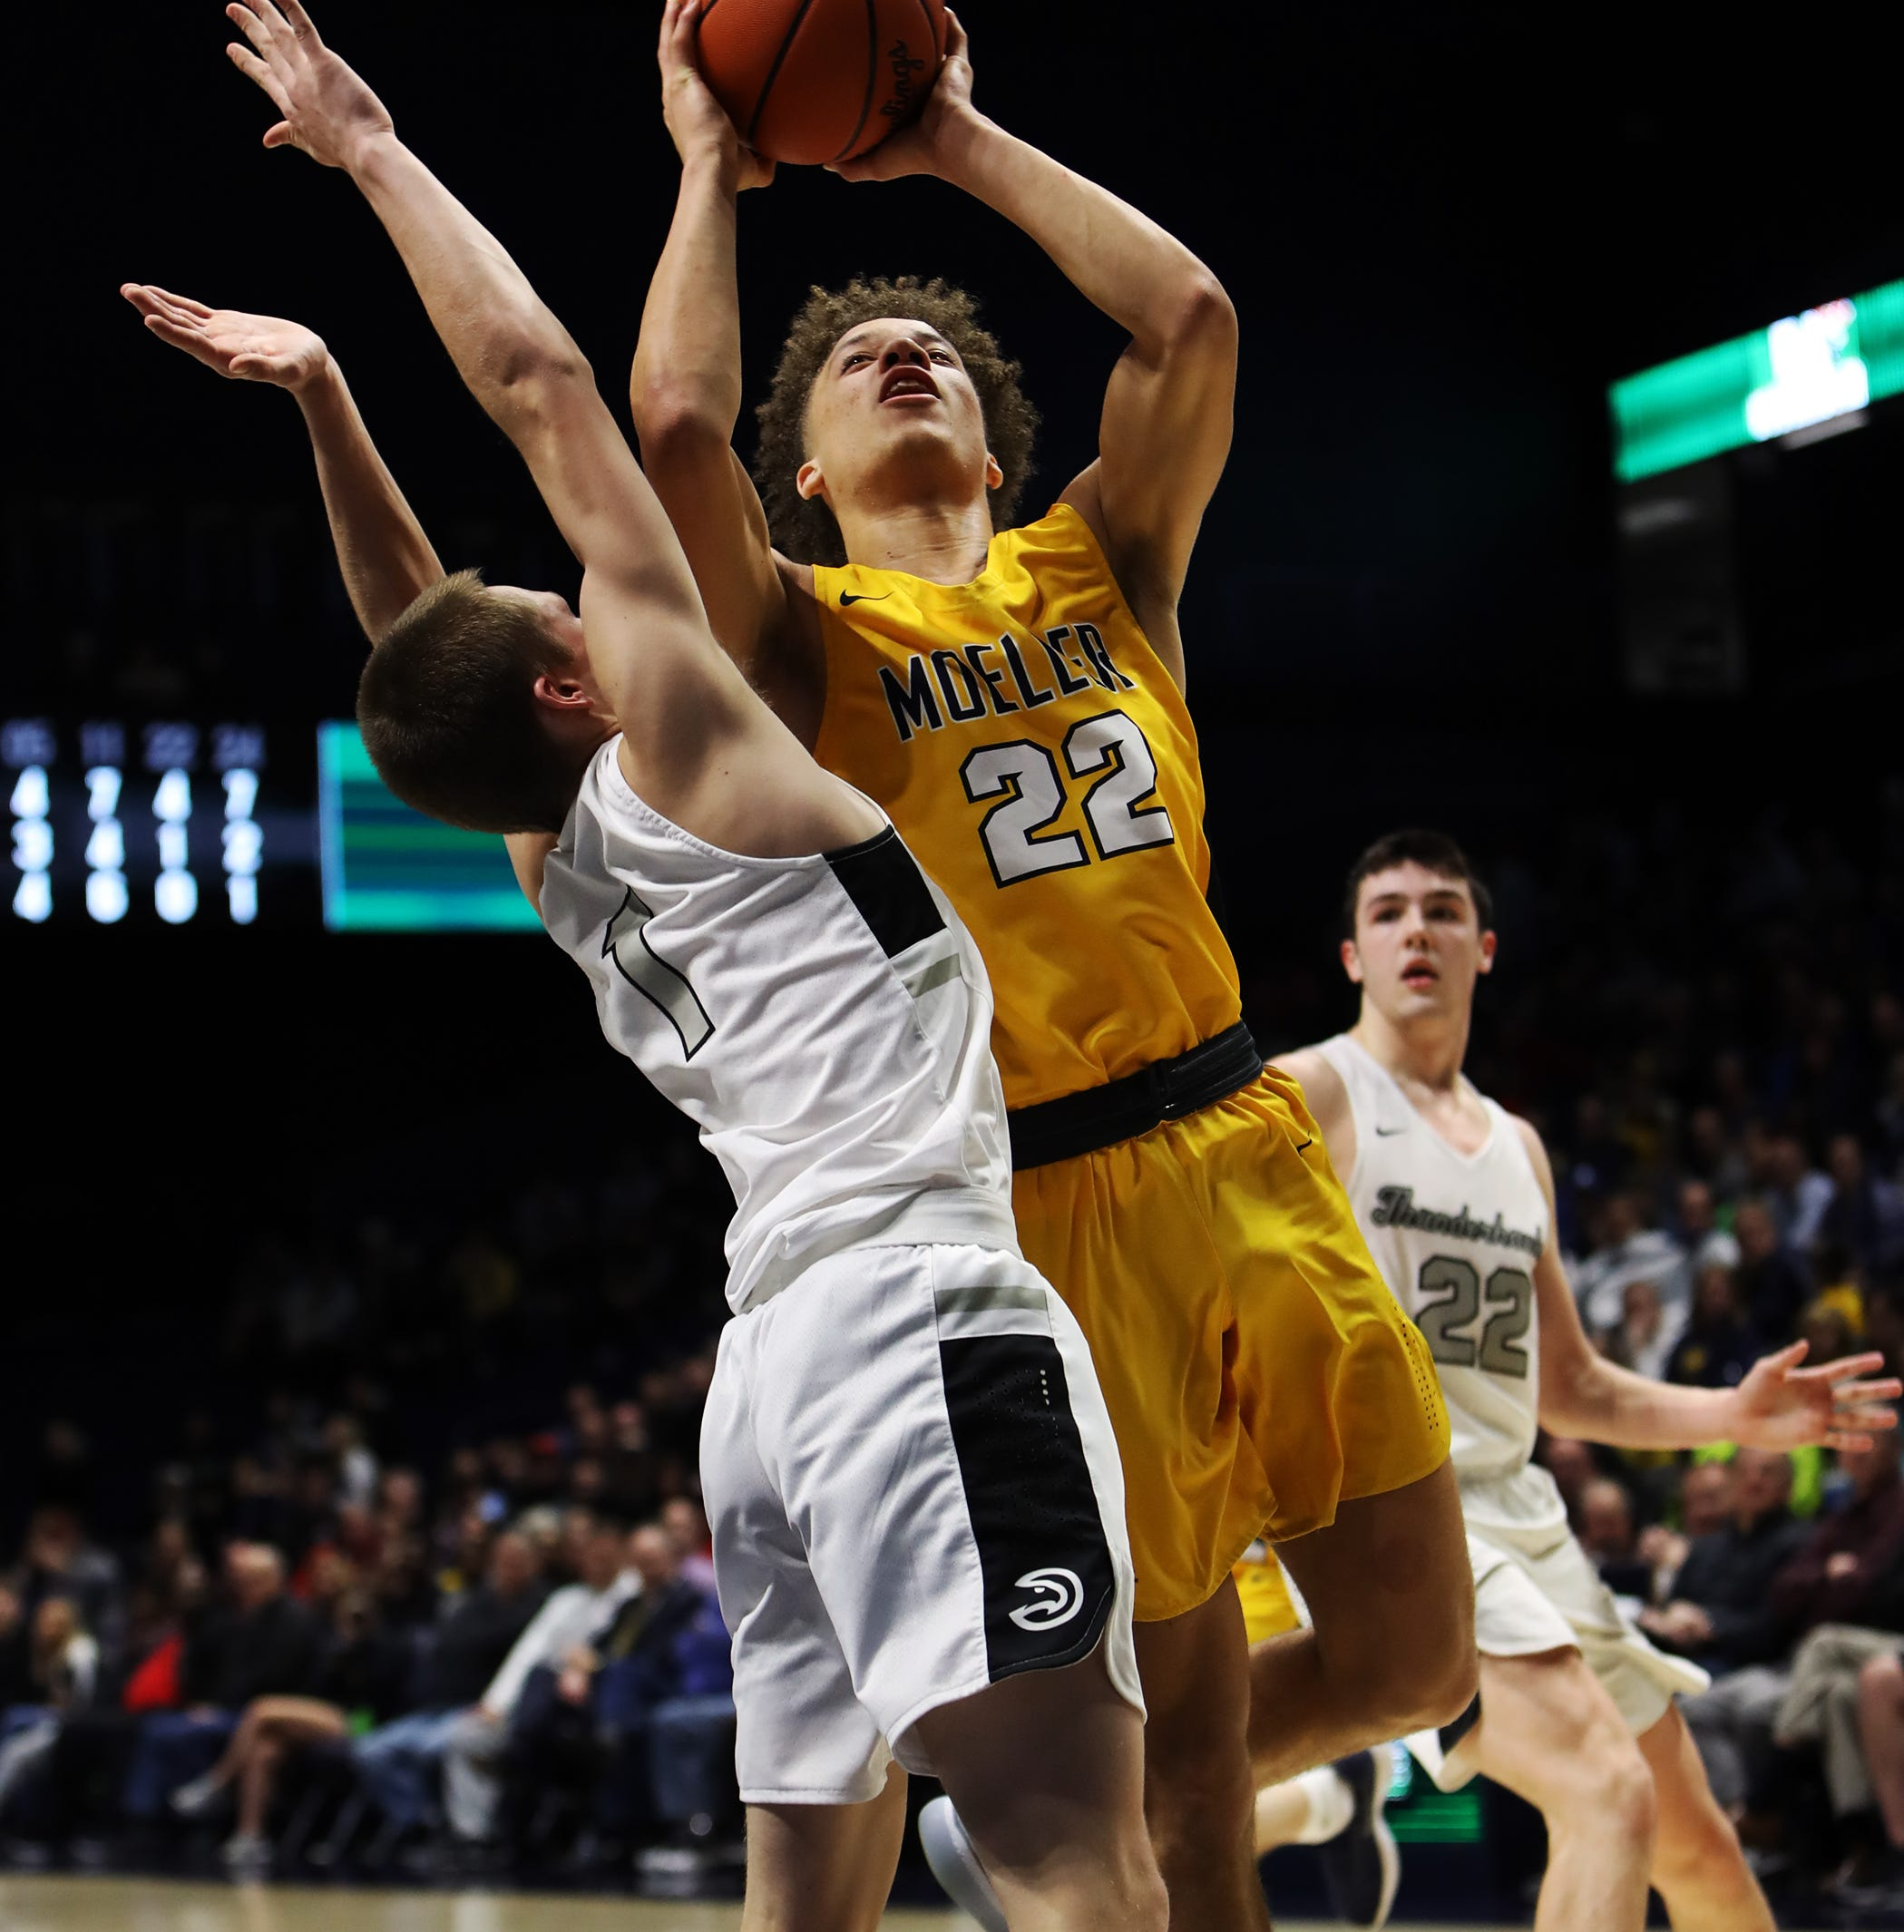 Moeller High School basketball handles Lakota East in Division I regional semifinal, 47-33